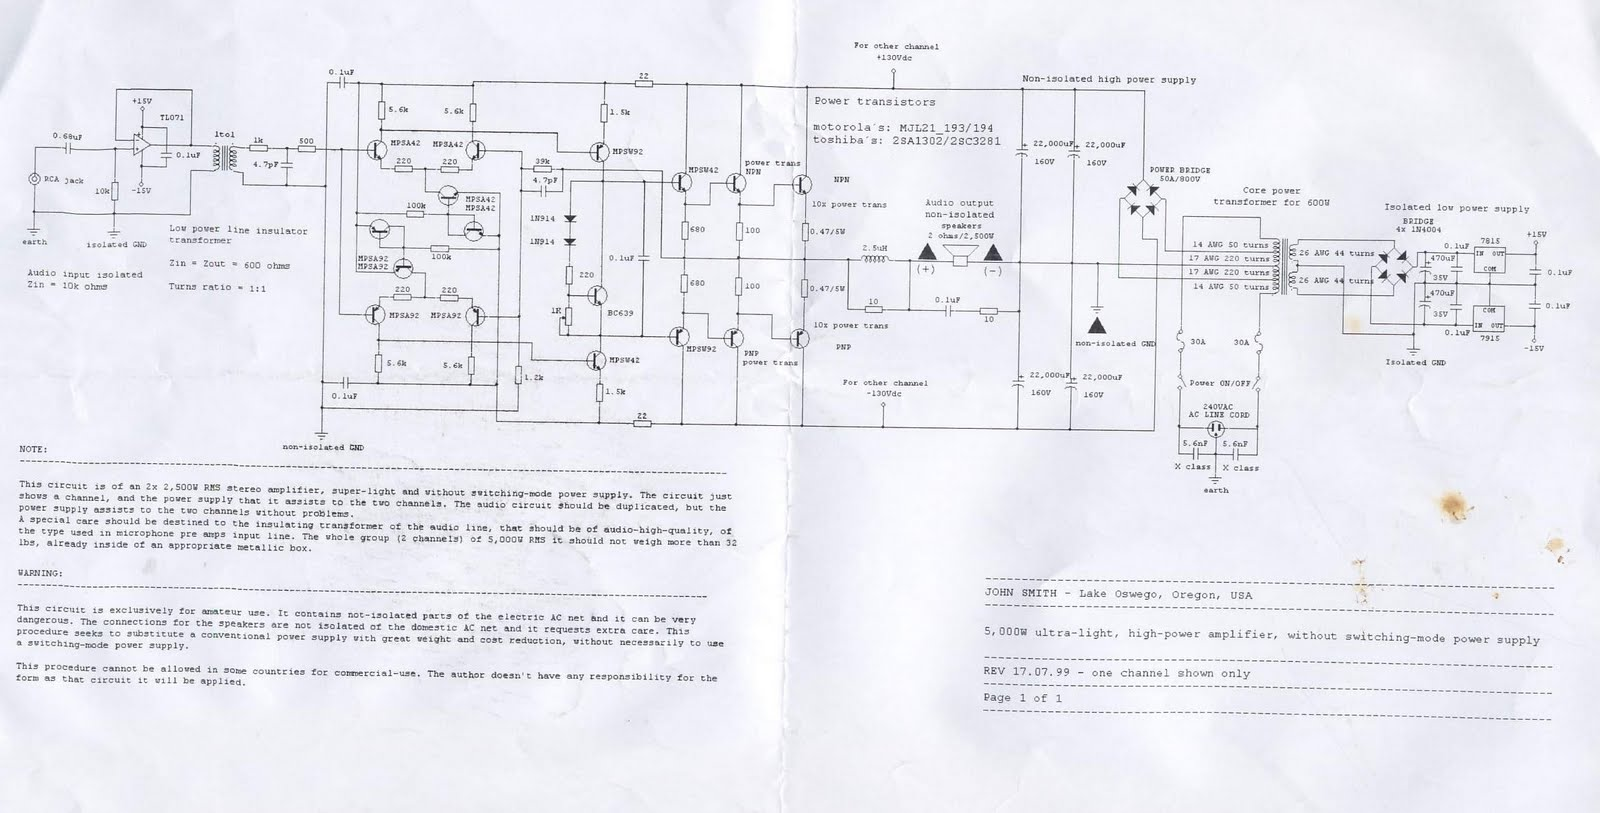 5 Watt Amplifier Circuit Diagram Wiring Library Car Lifier And Subwoofer 5000w High Power Schematic